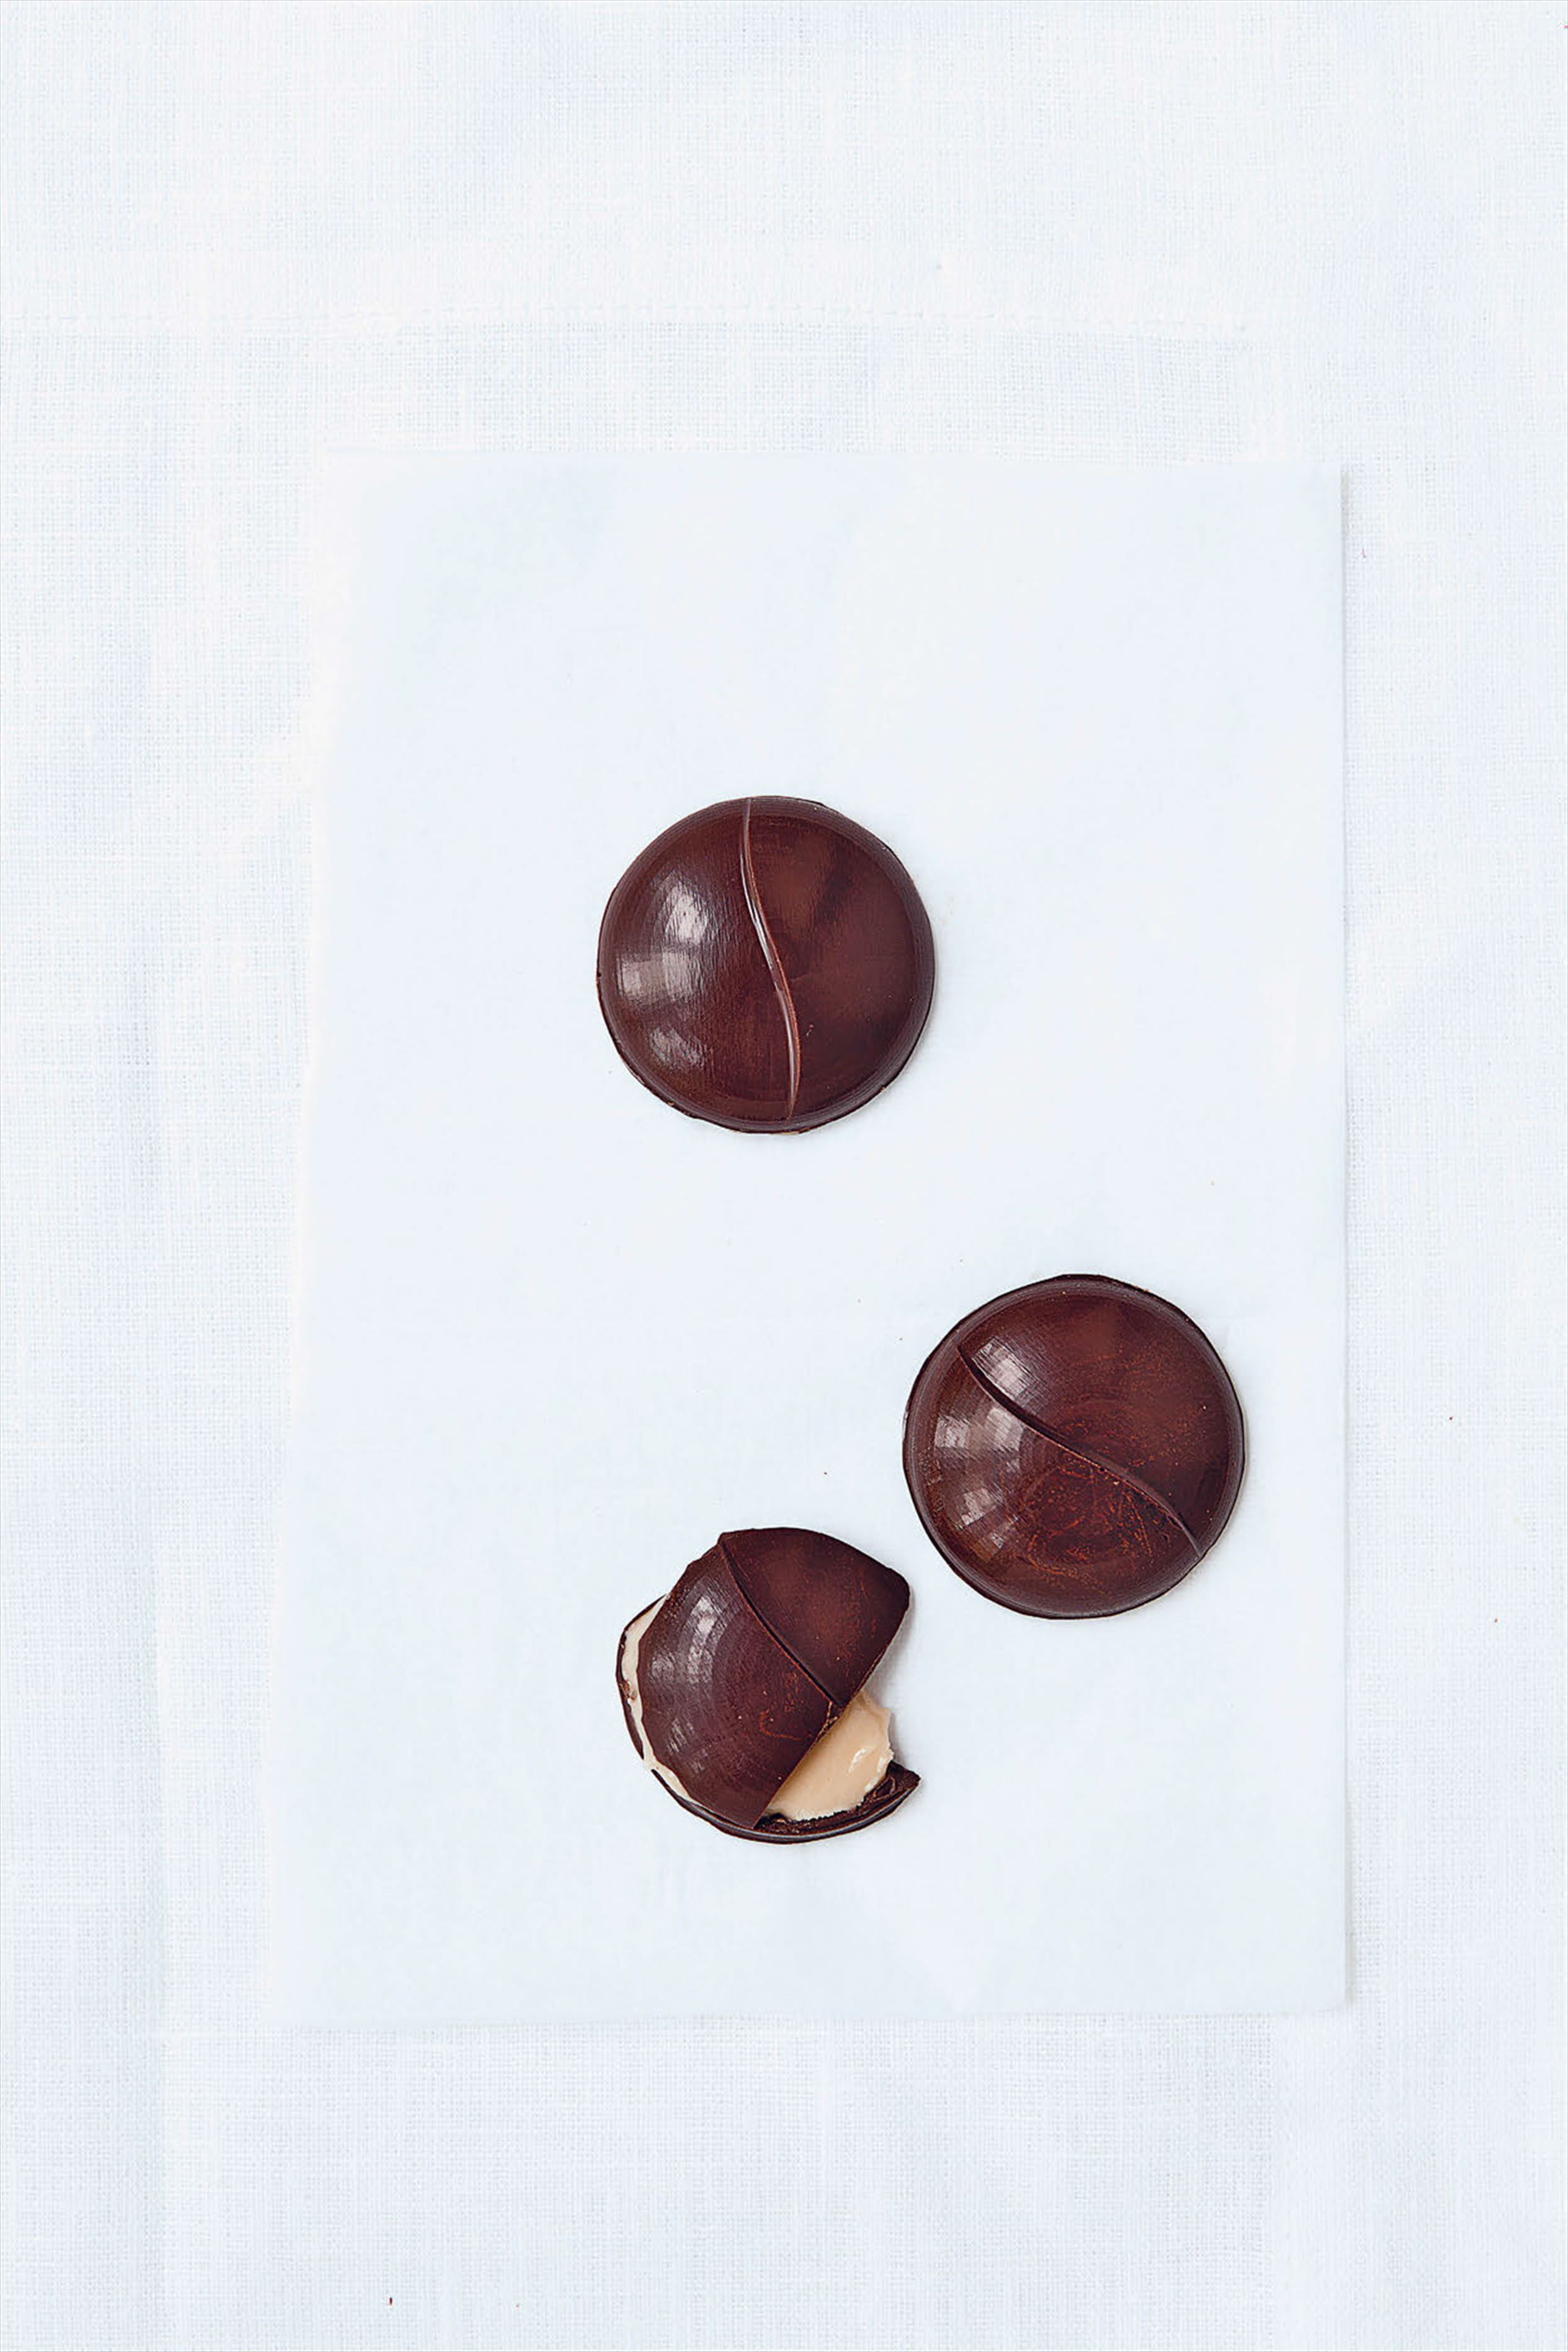 Coffee liquor fondant-filled chocolates